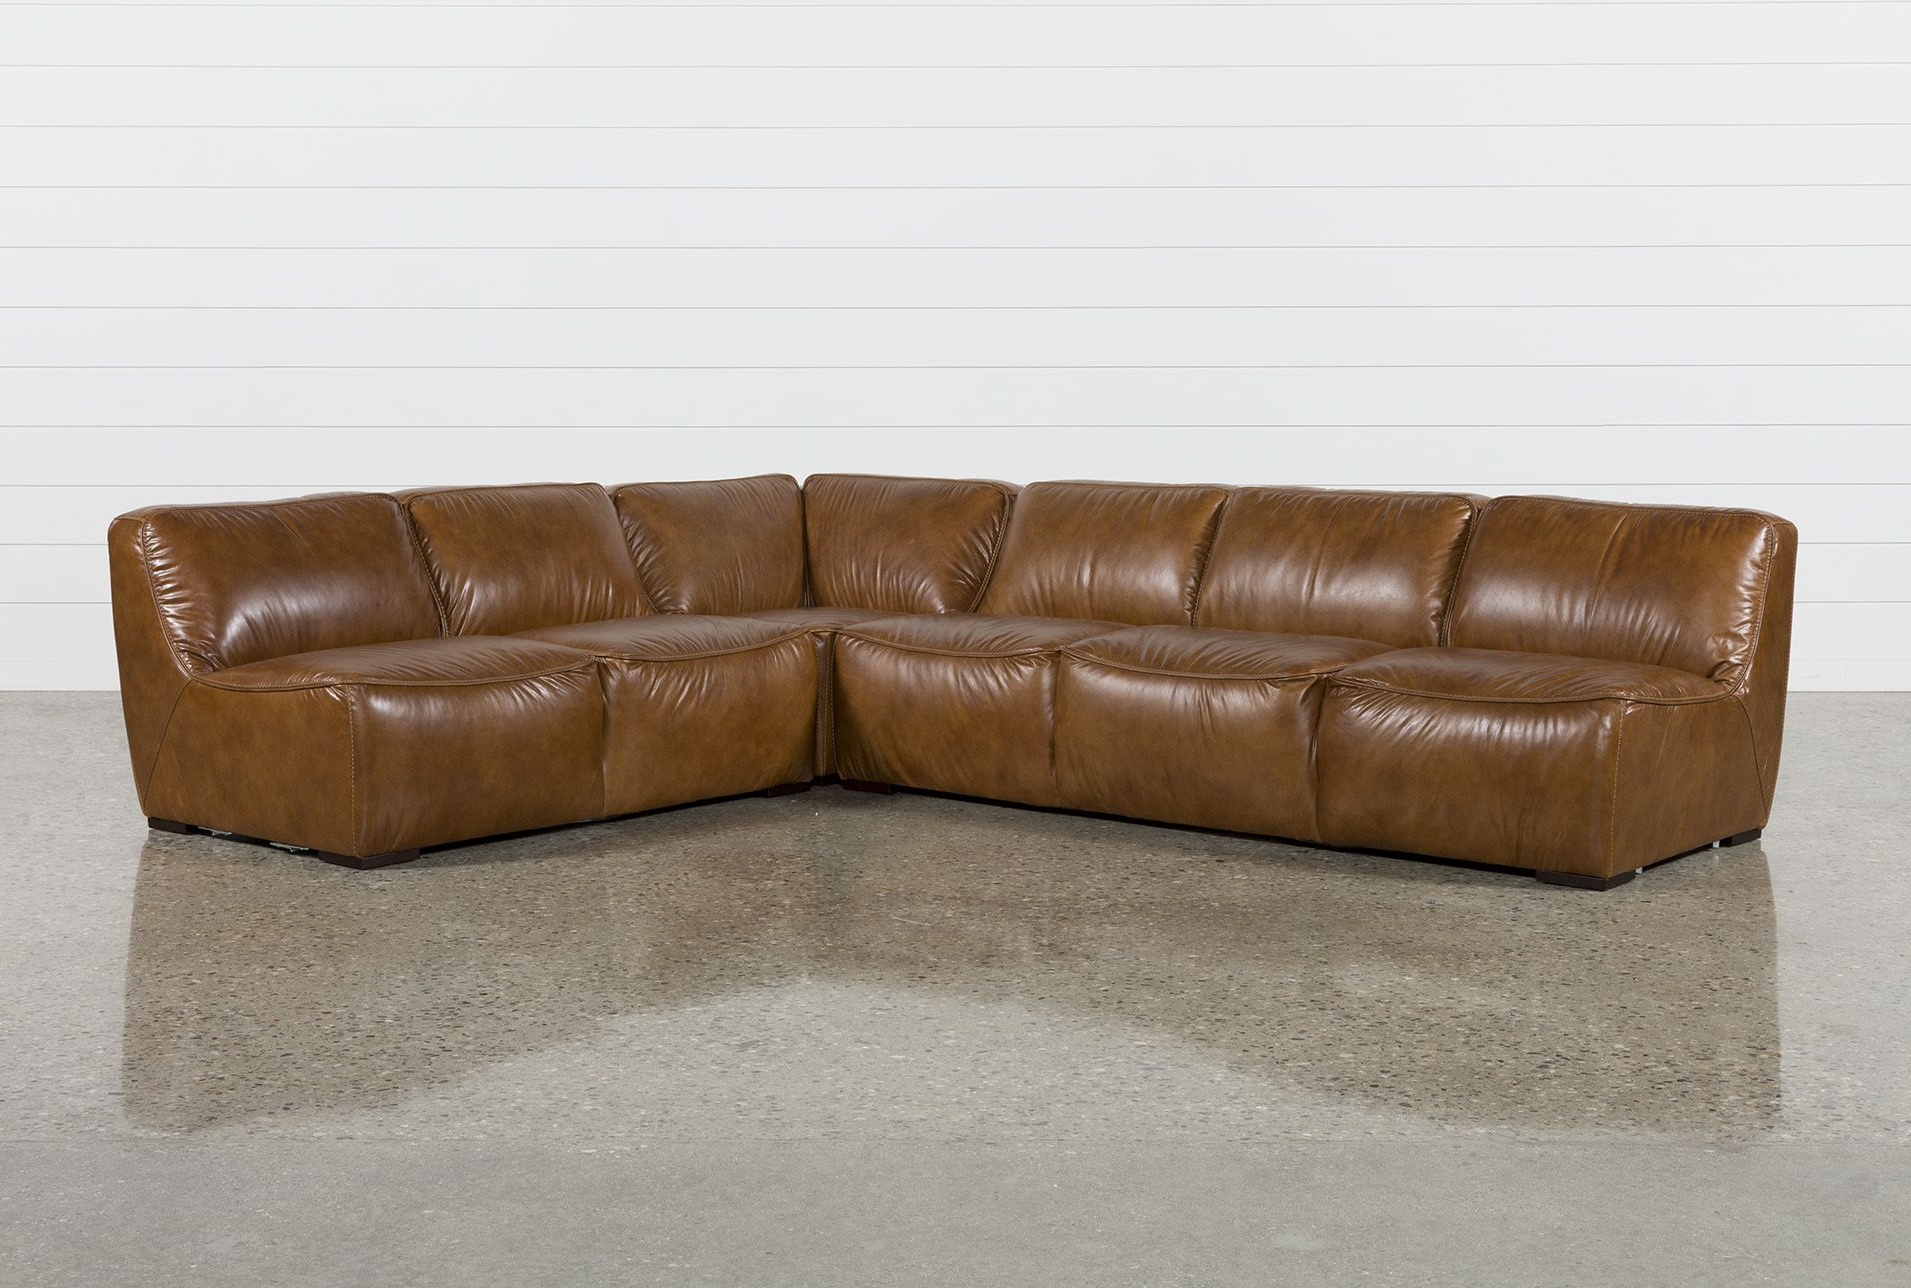 30 Things In Your Home You Should Get Rid Ofage 30 Within Latest Norfolk Chocolate 3 Piece Sectionals With Raf Chaise (View 2 of 20)